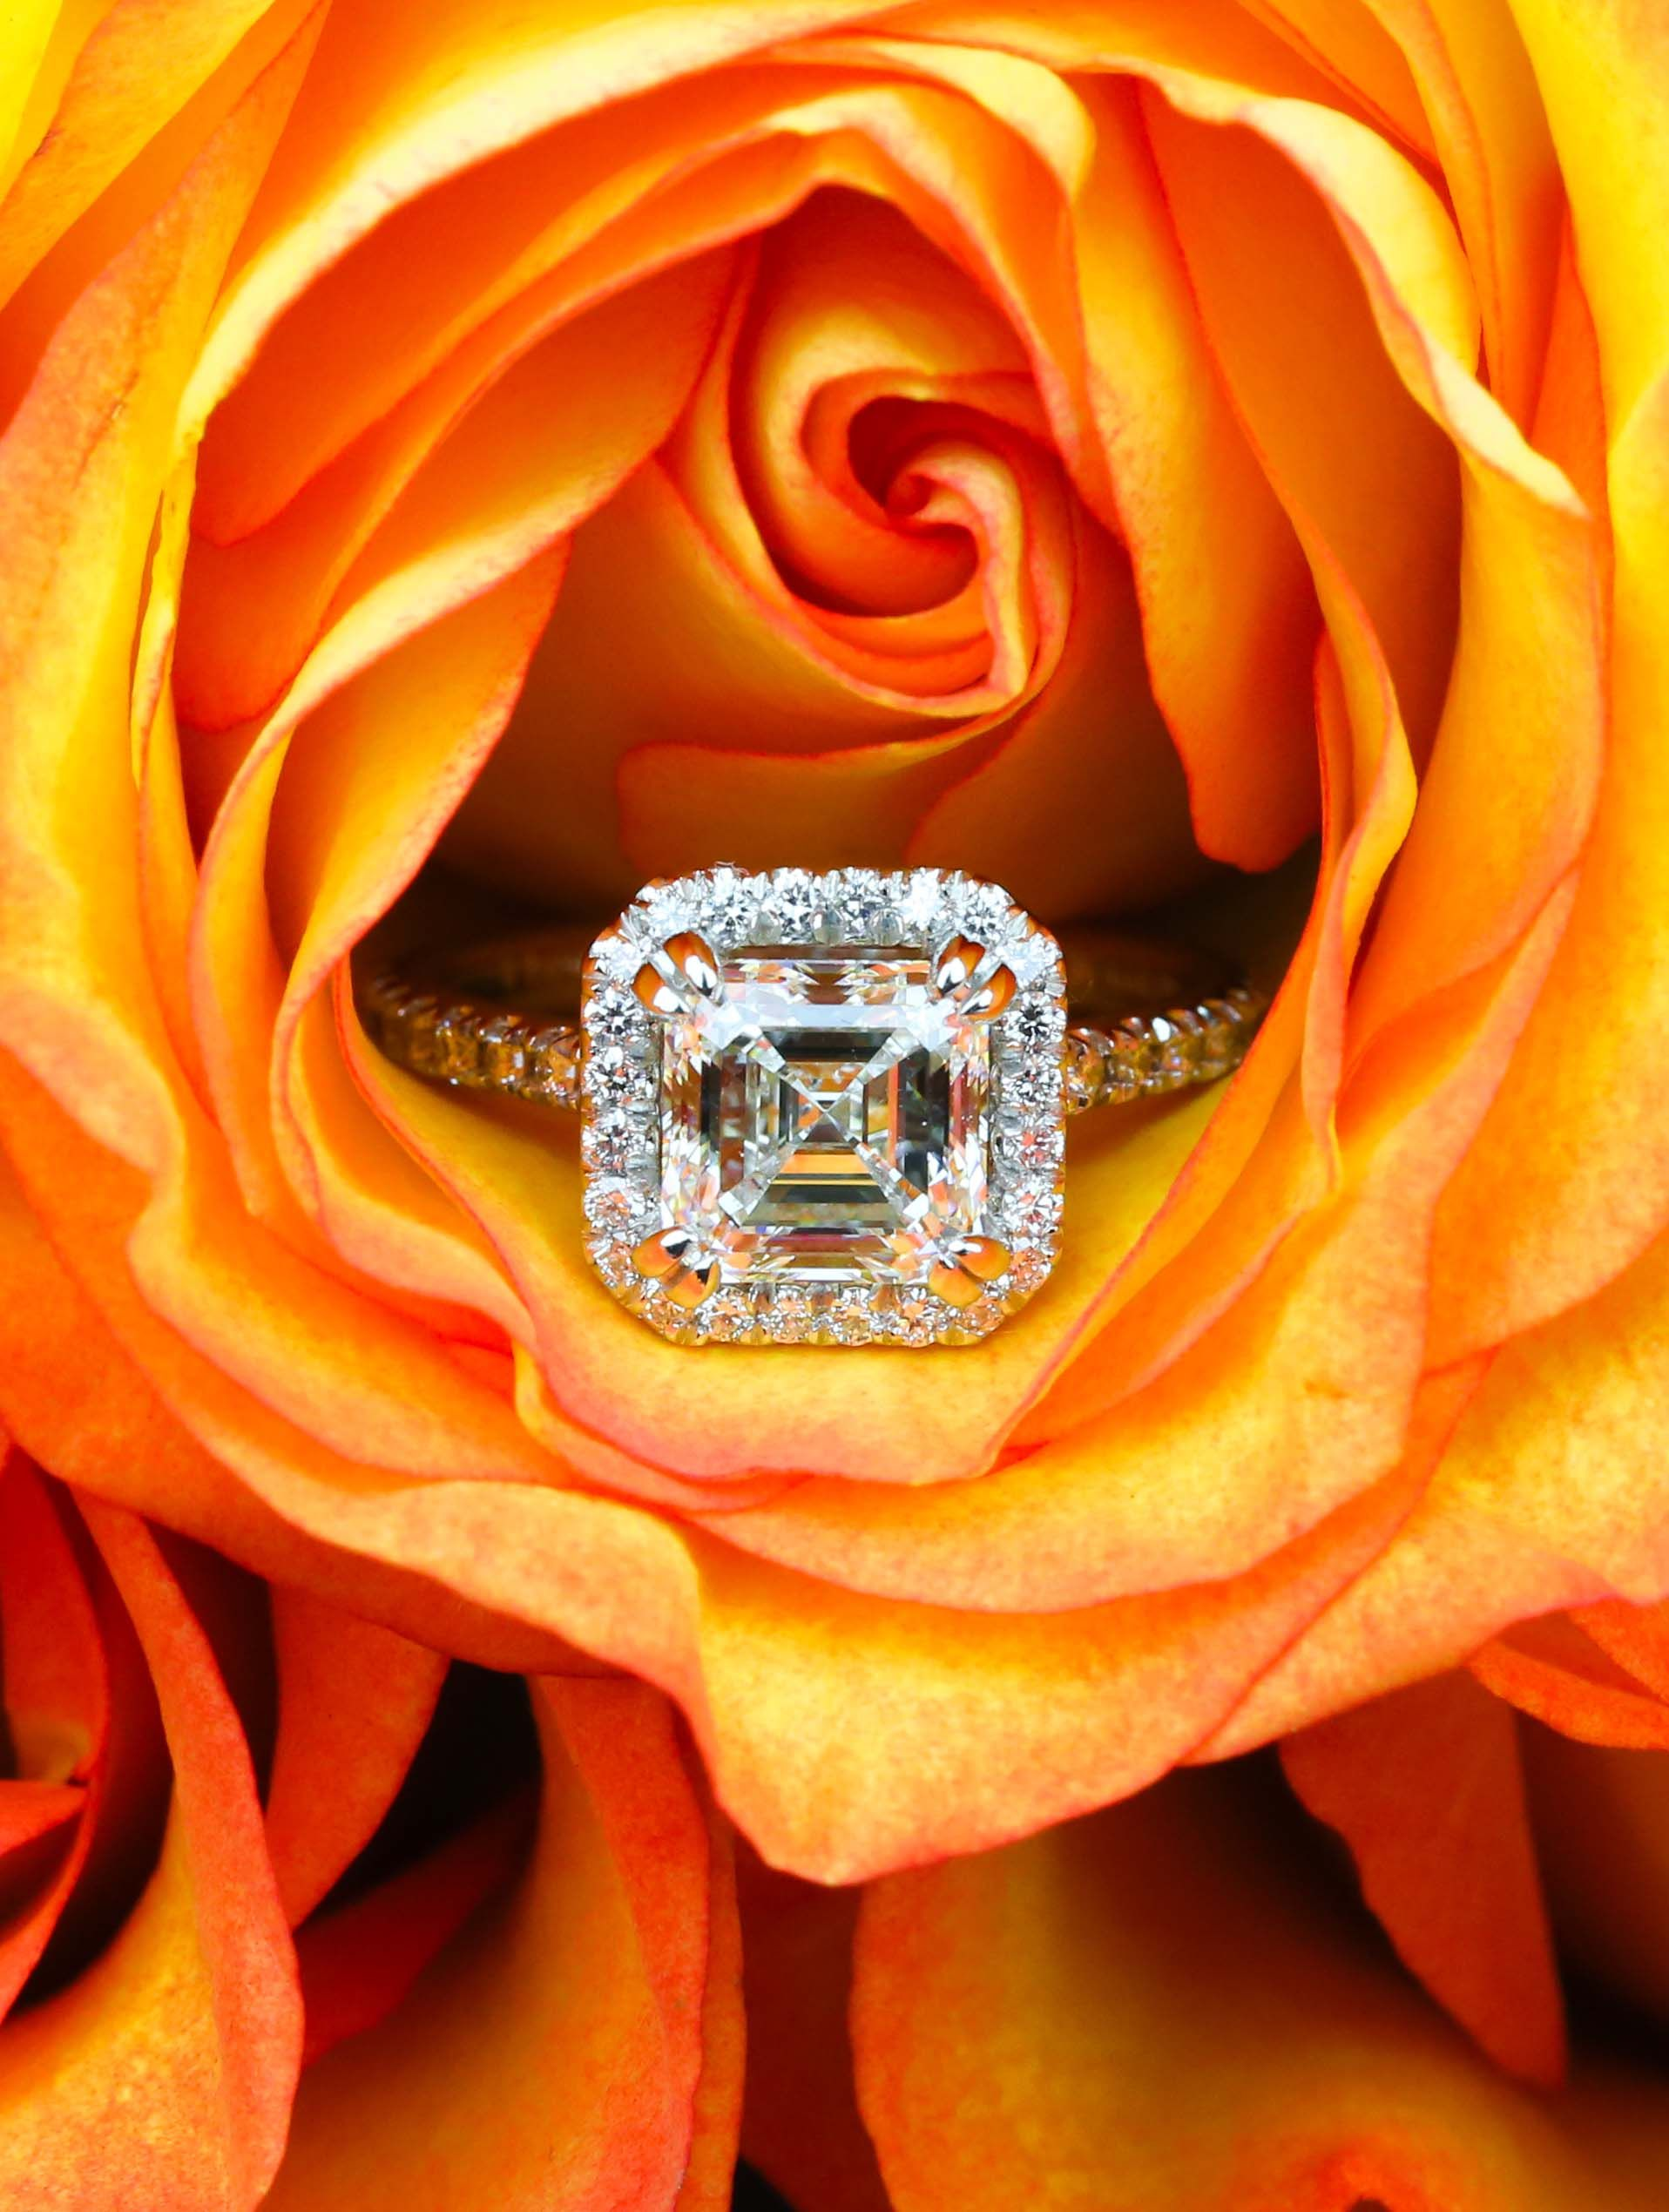 34ba538c4 A beautiful Petite Halo 2.00 Carat Asscher Diamond Engagement Ring from our  recently purchased collection! Click through to see pricing and more  details!